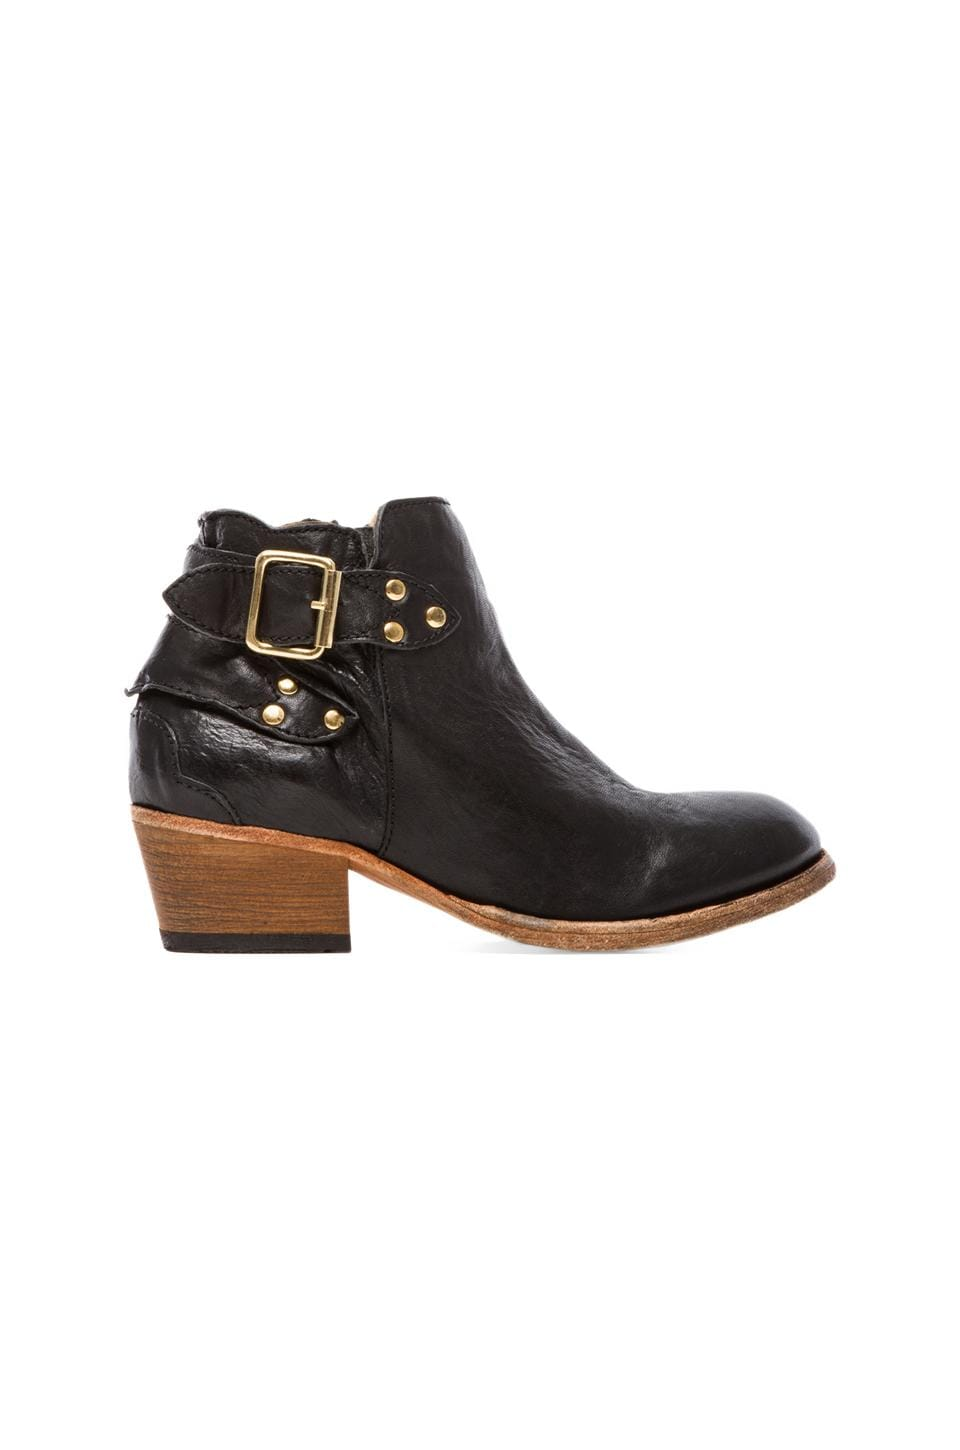 H by Hudson Bora Boot in Calf Black